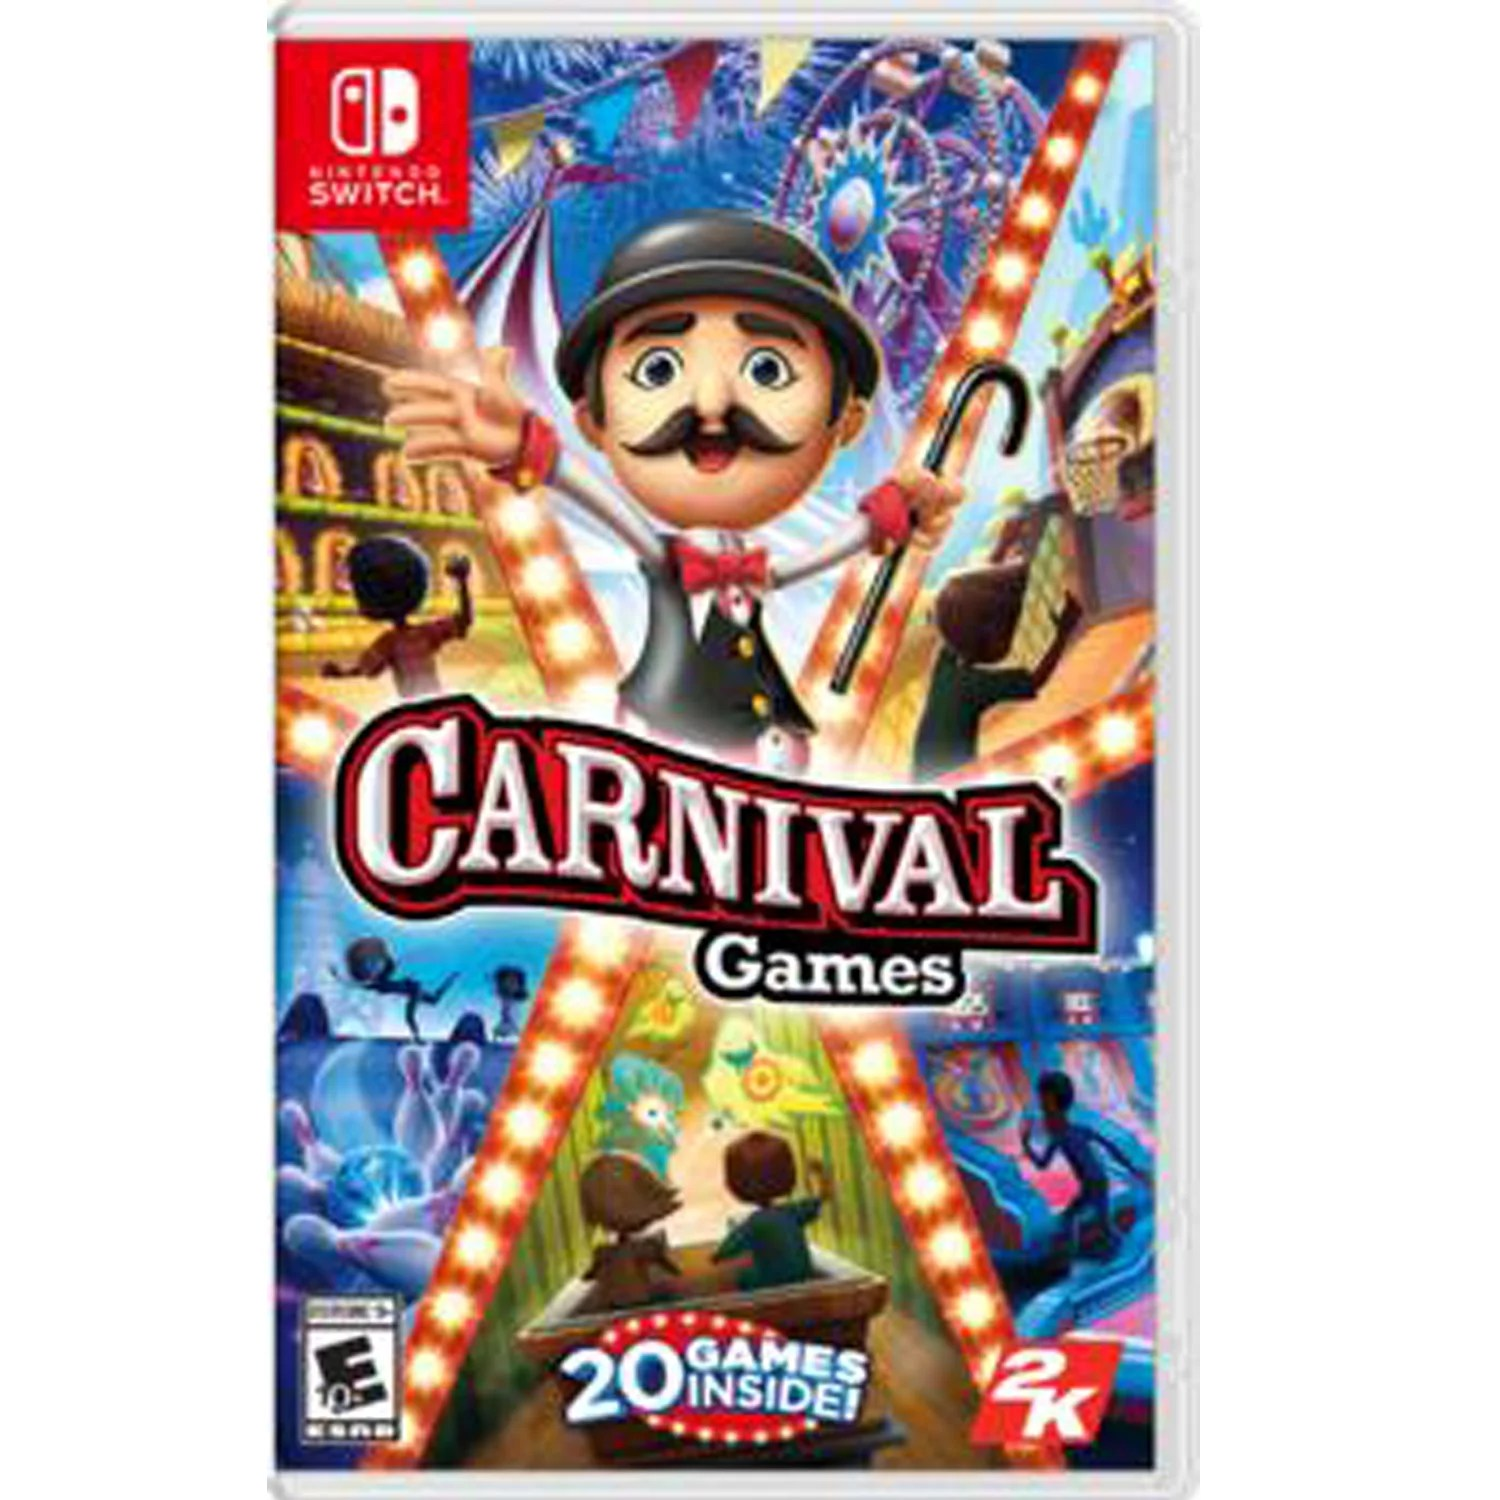 Carnival Games 2k Nintendo Switch 710425551574